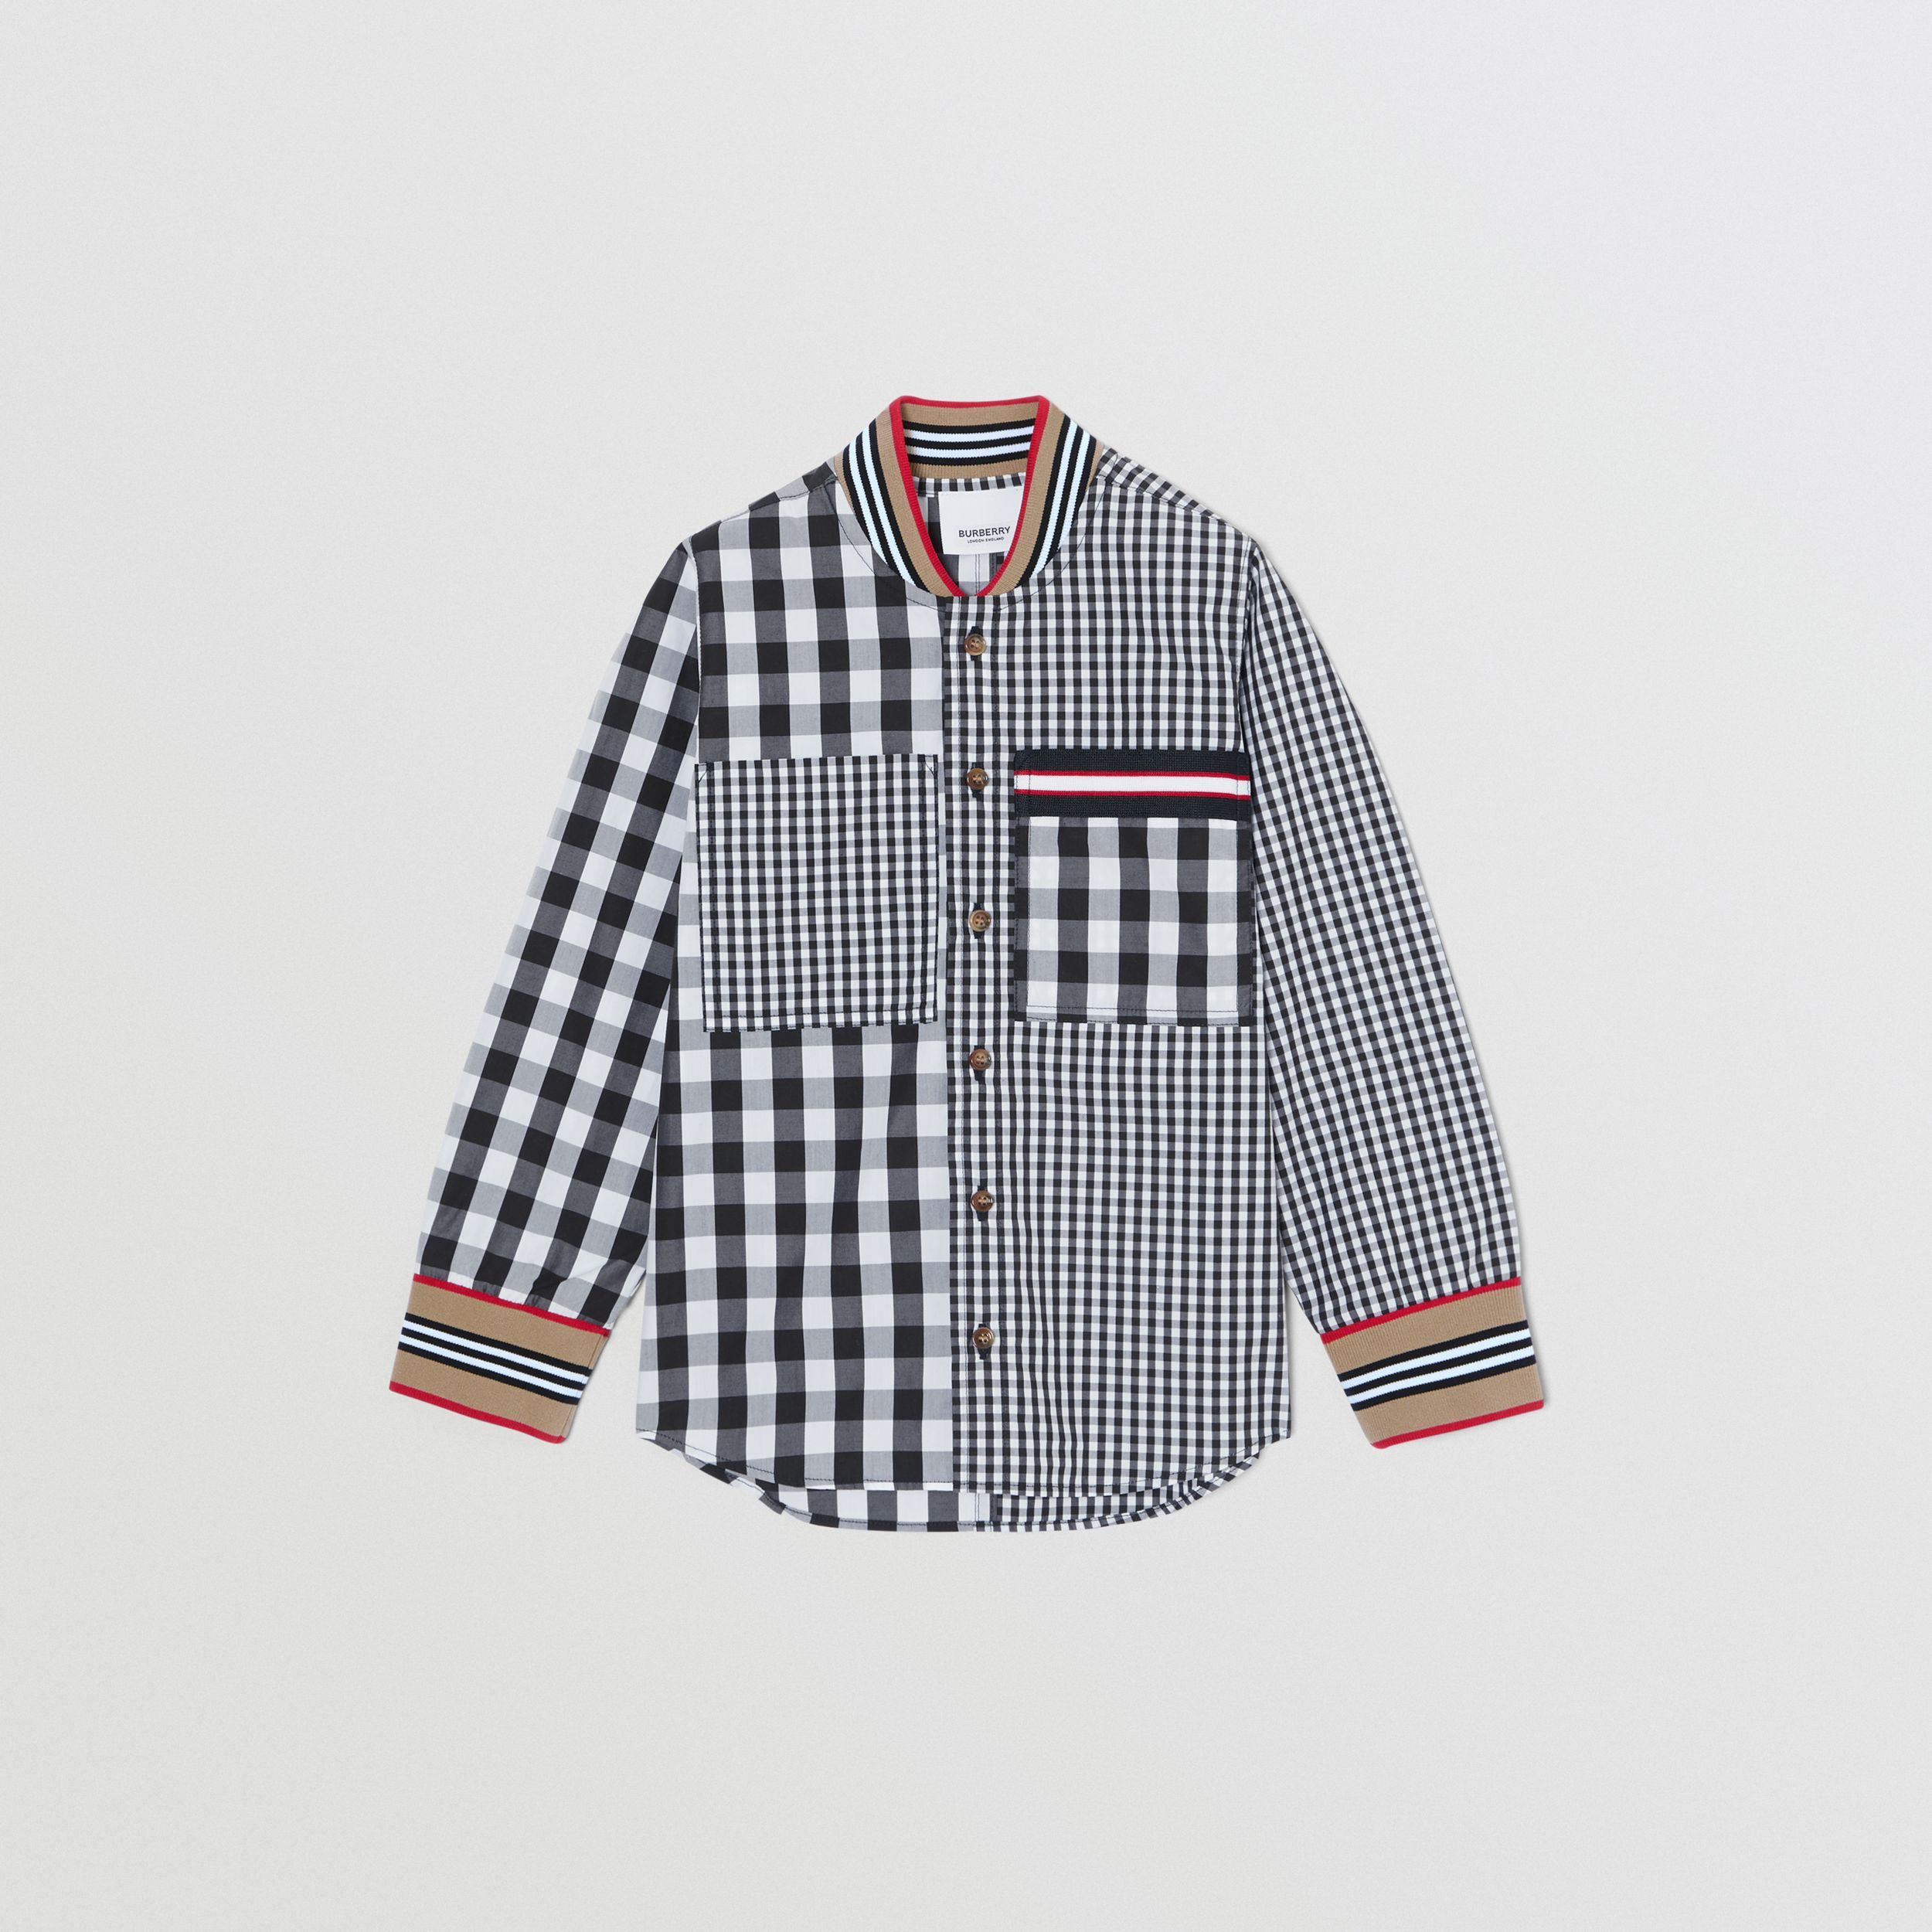 Icon Stripe Trim Gingham Cotton Shirt in Black | Burberry Hong Kong S.A.R. - 1